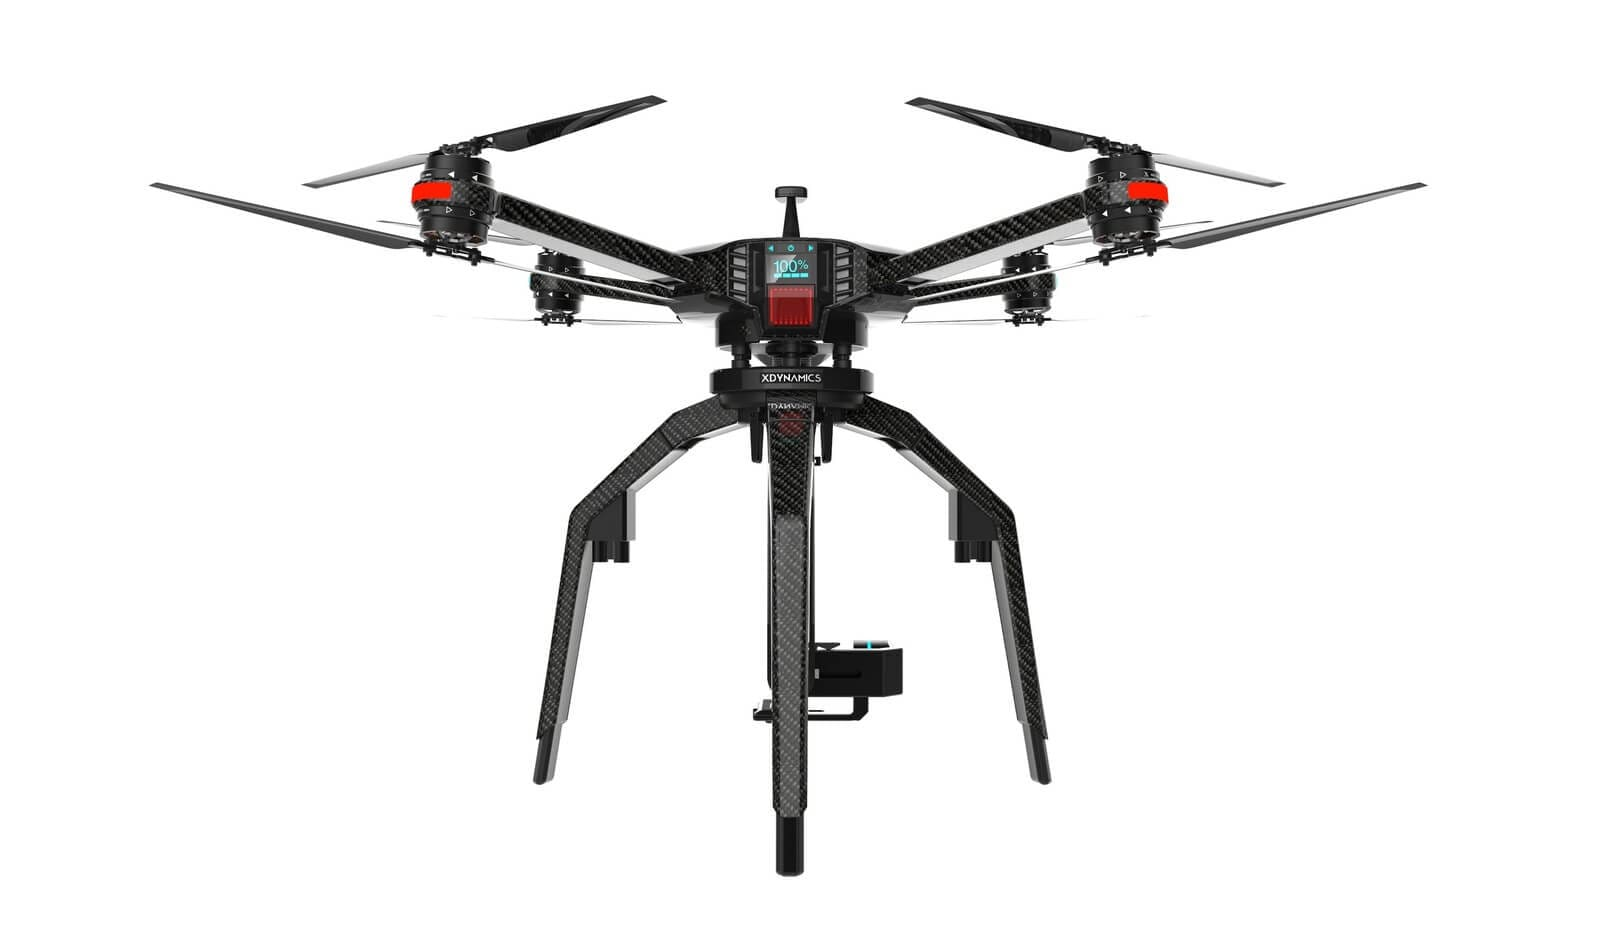 xdynamics New Industrial-Grade Octocopter Puts Emphasis on Customization